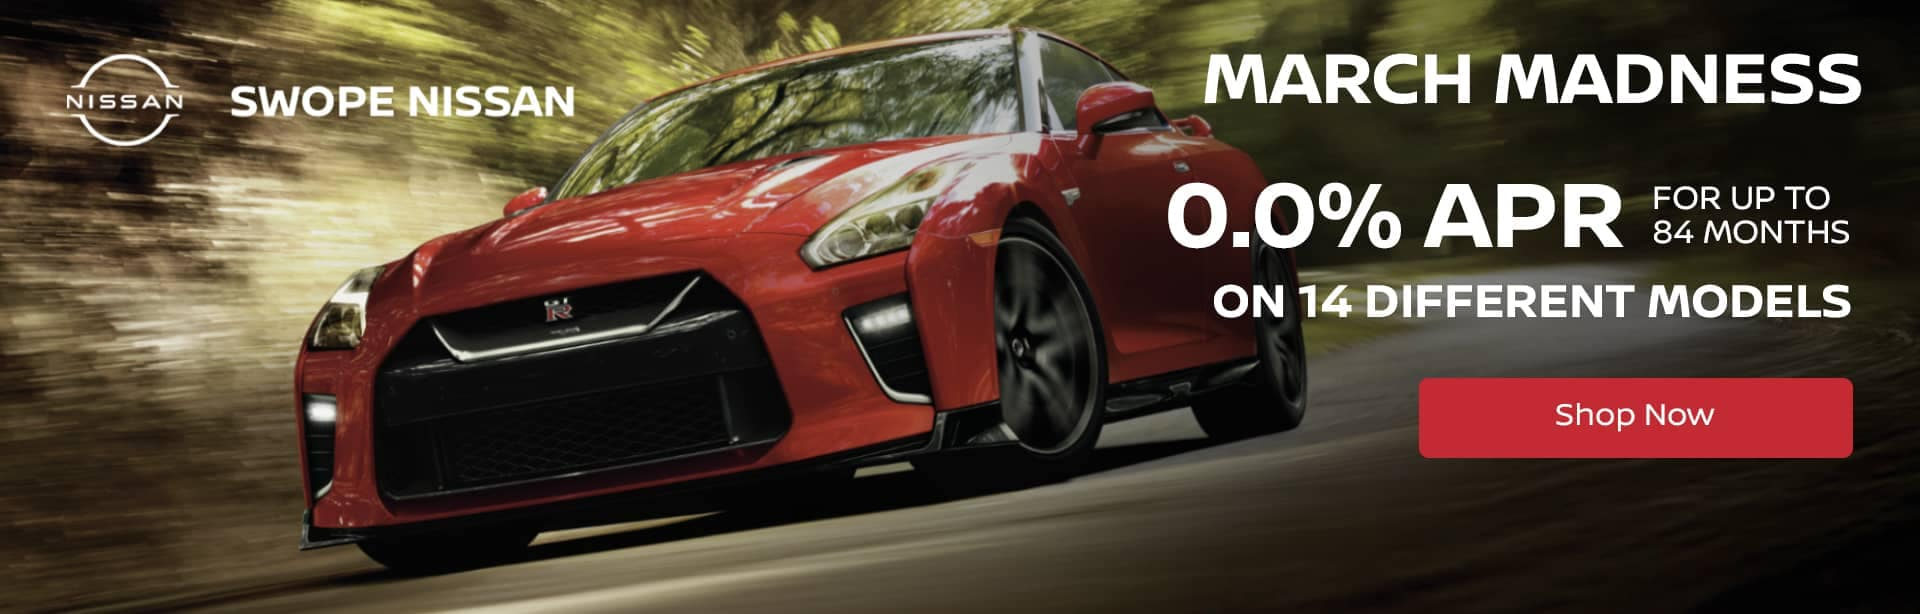 March Madness Deal - 0.0% APR for up to 84 Months on 14 different models